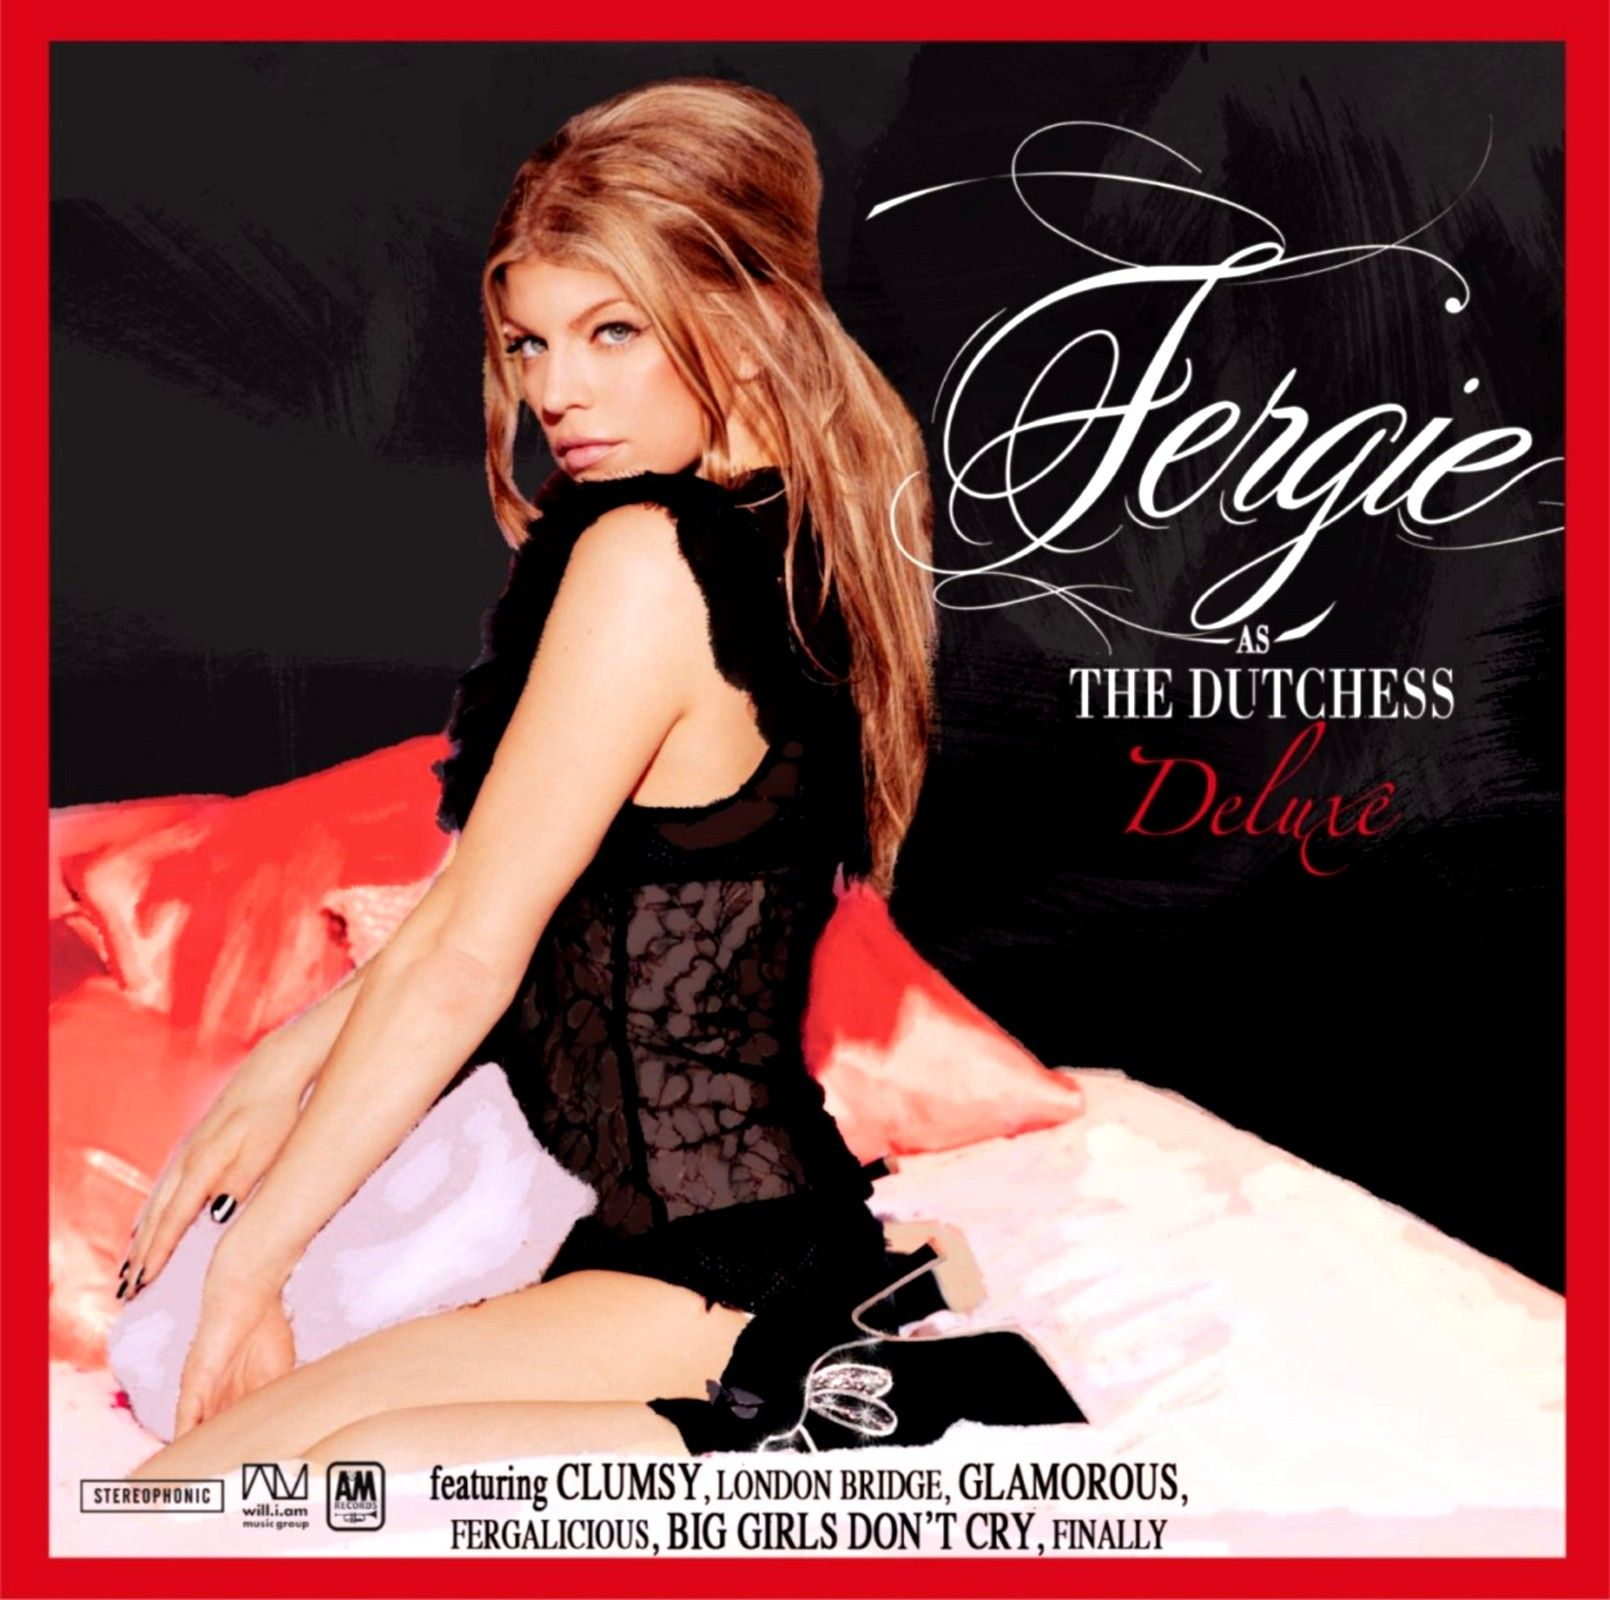 Fergie - The Dutchess: Deluxe E.p. album cover